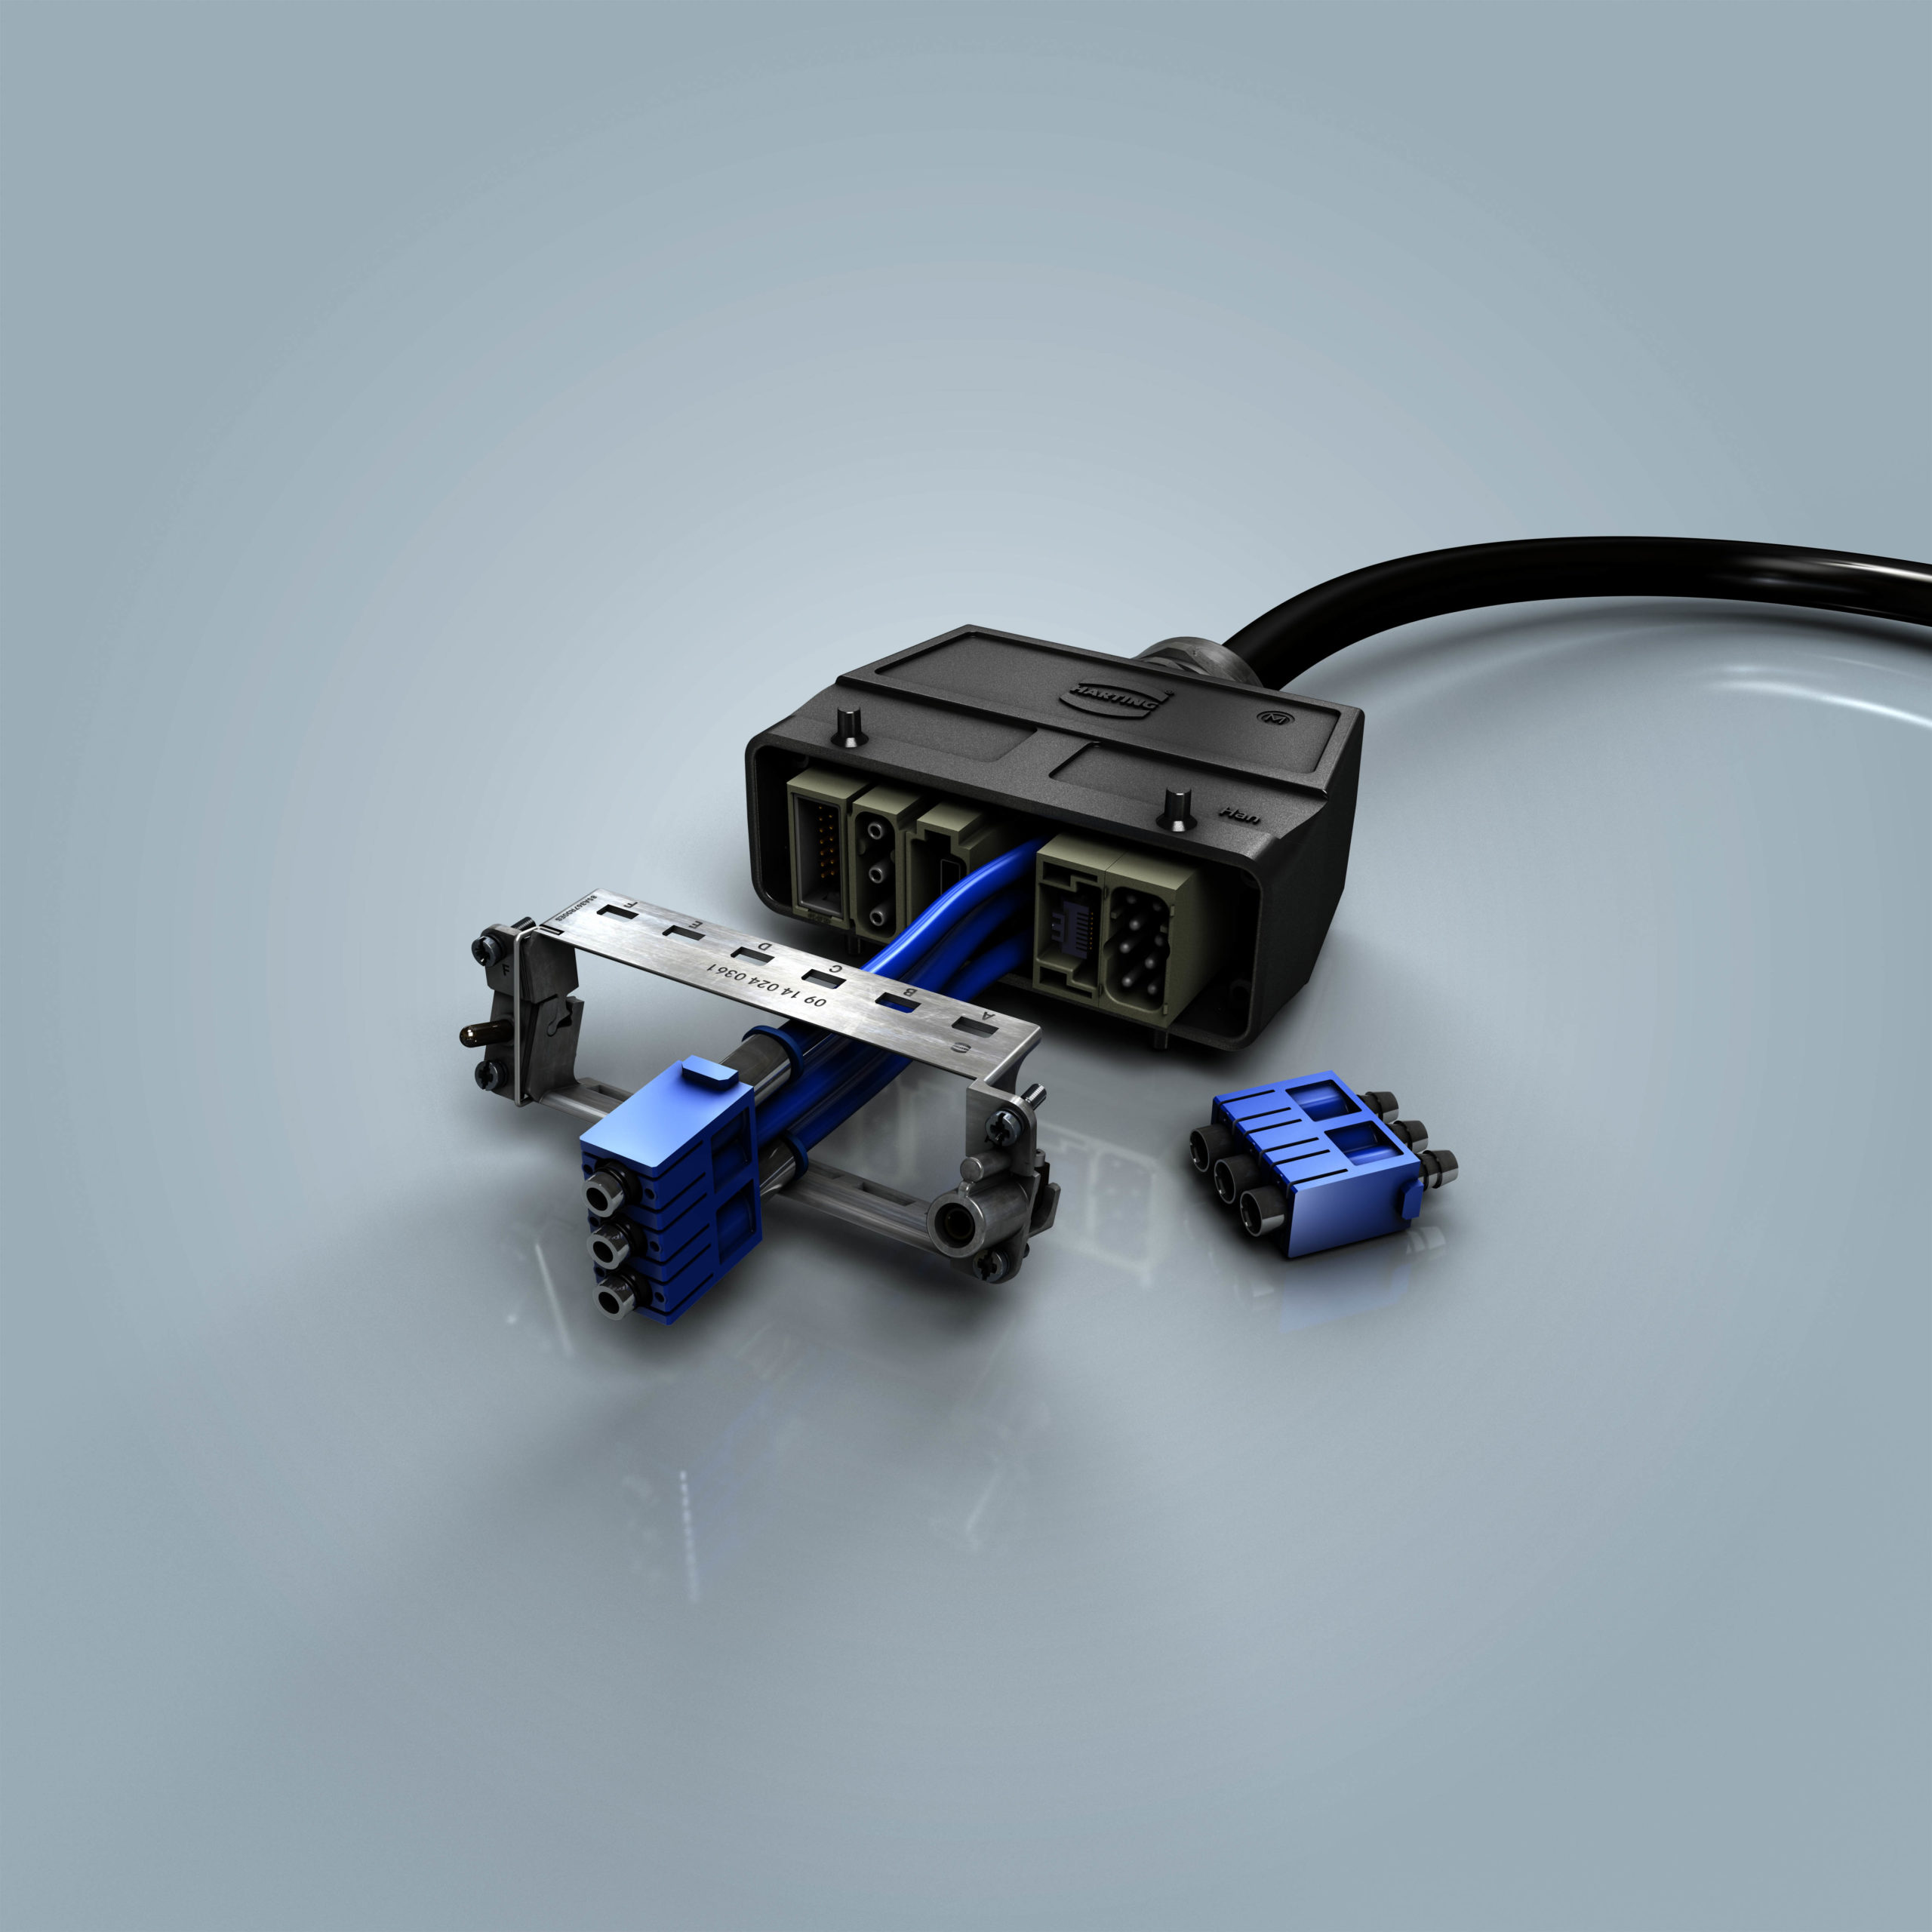 Modular connector interface enables compressed air delivery with thousands of mating cycles